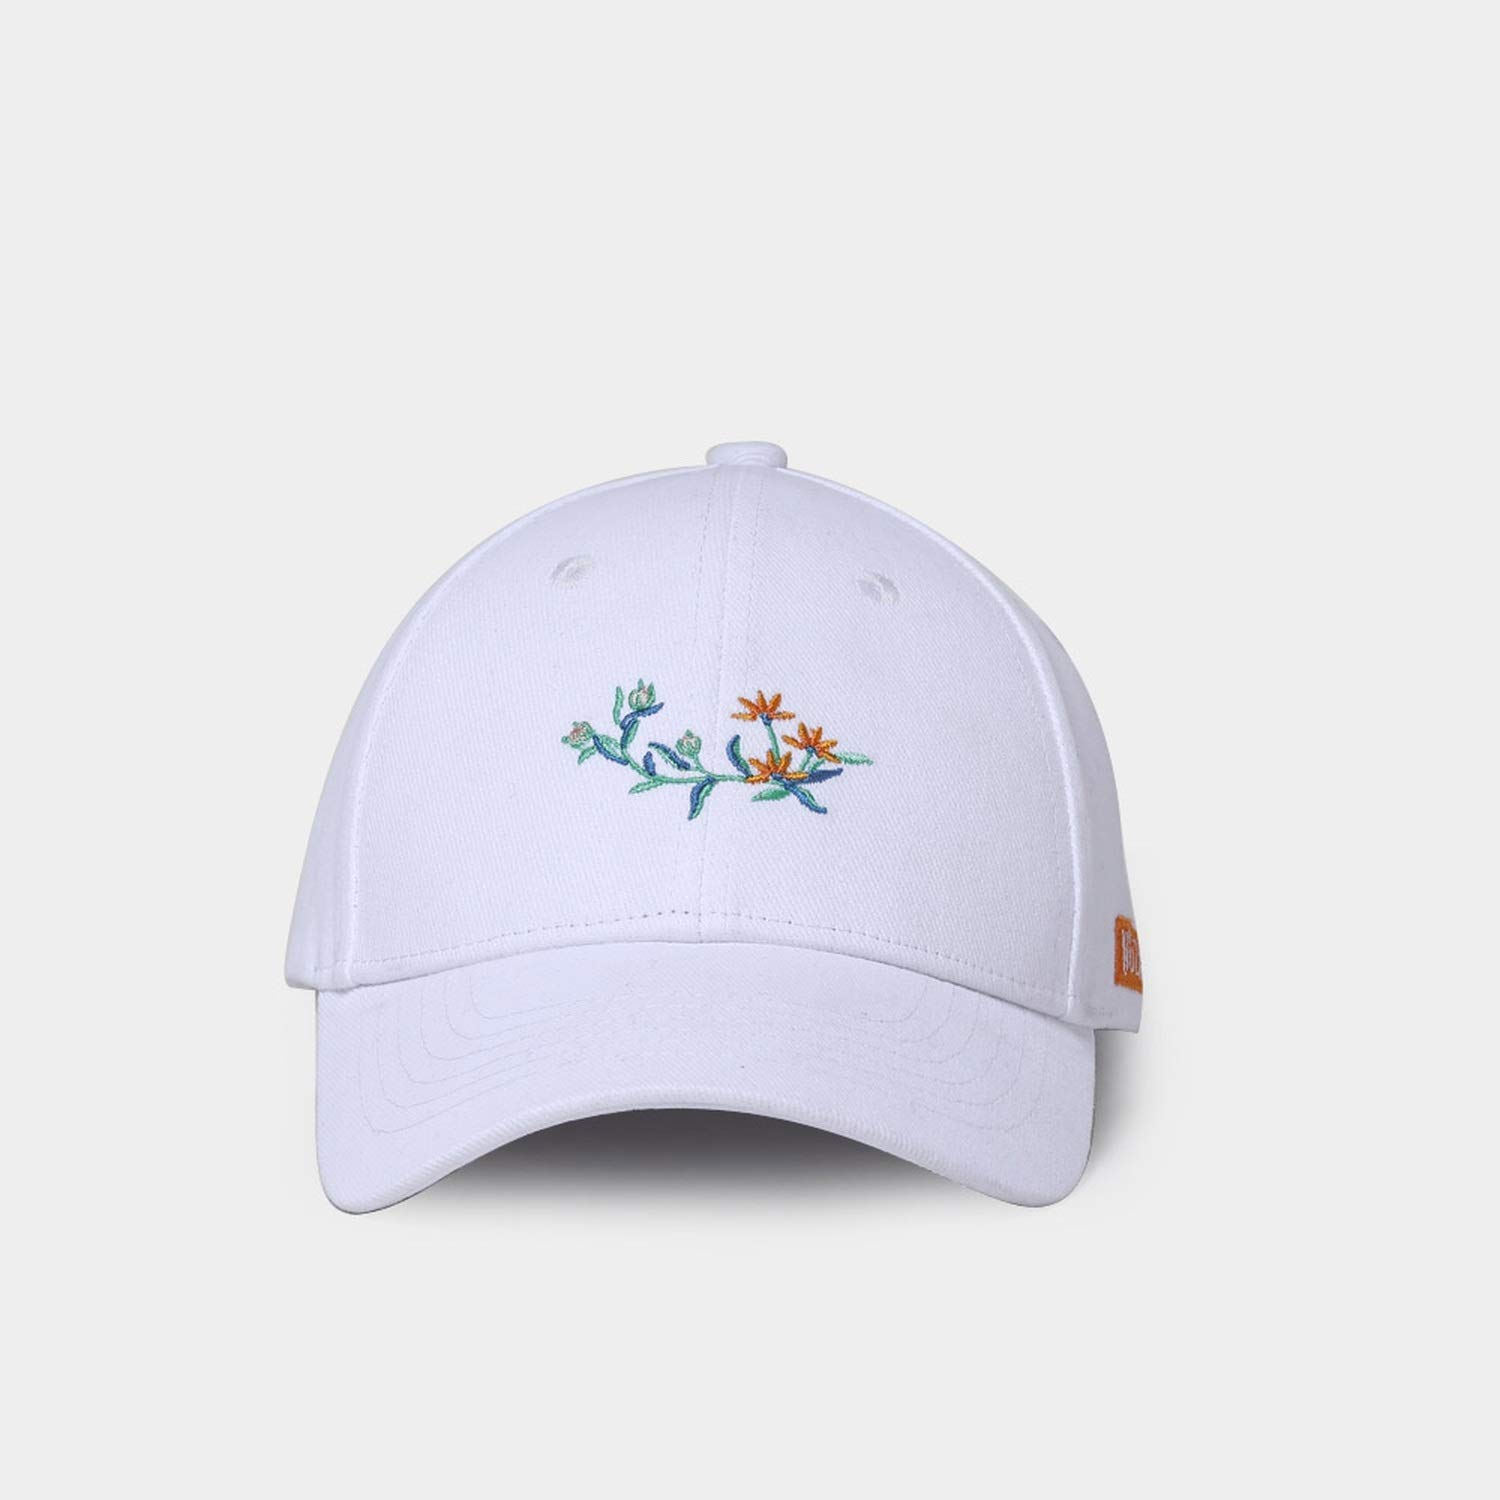 PREtty-2 Women Baseball Cap Cotton Spring Summer Bone Caps Fashion Embroidery Small Flowers Hat